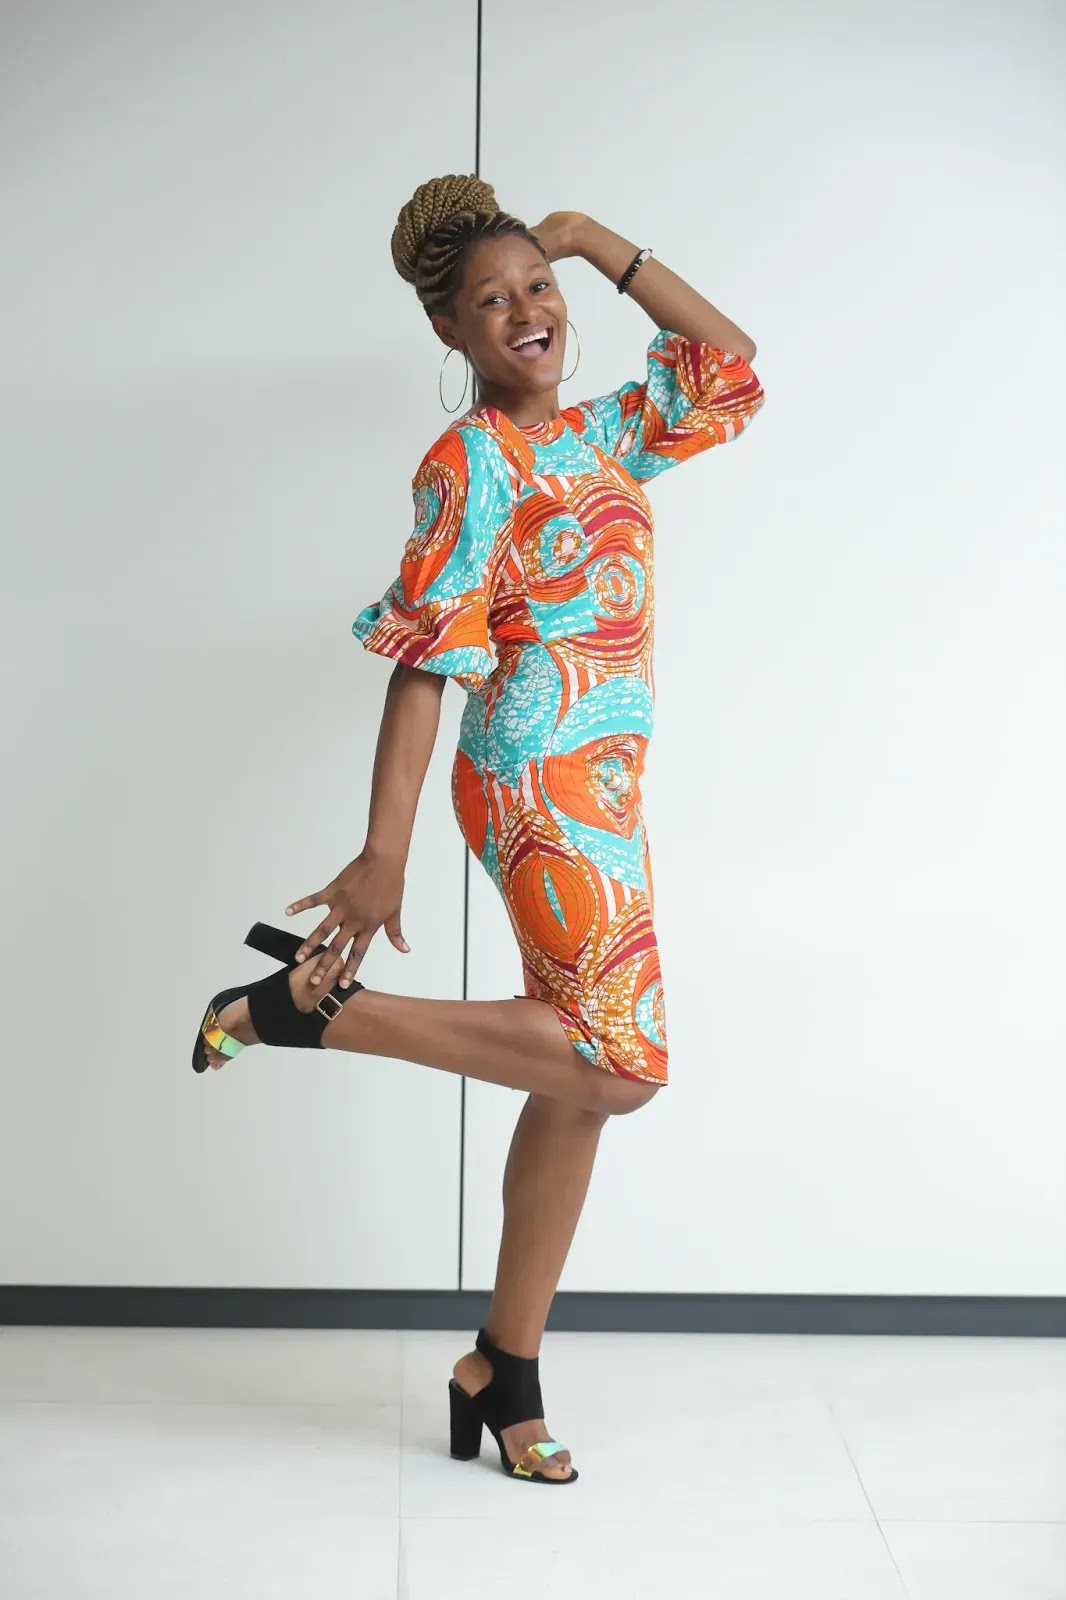 Sterling Bank introduces relaxed dress code for her employees